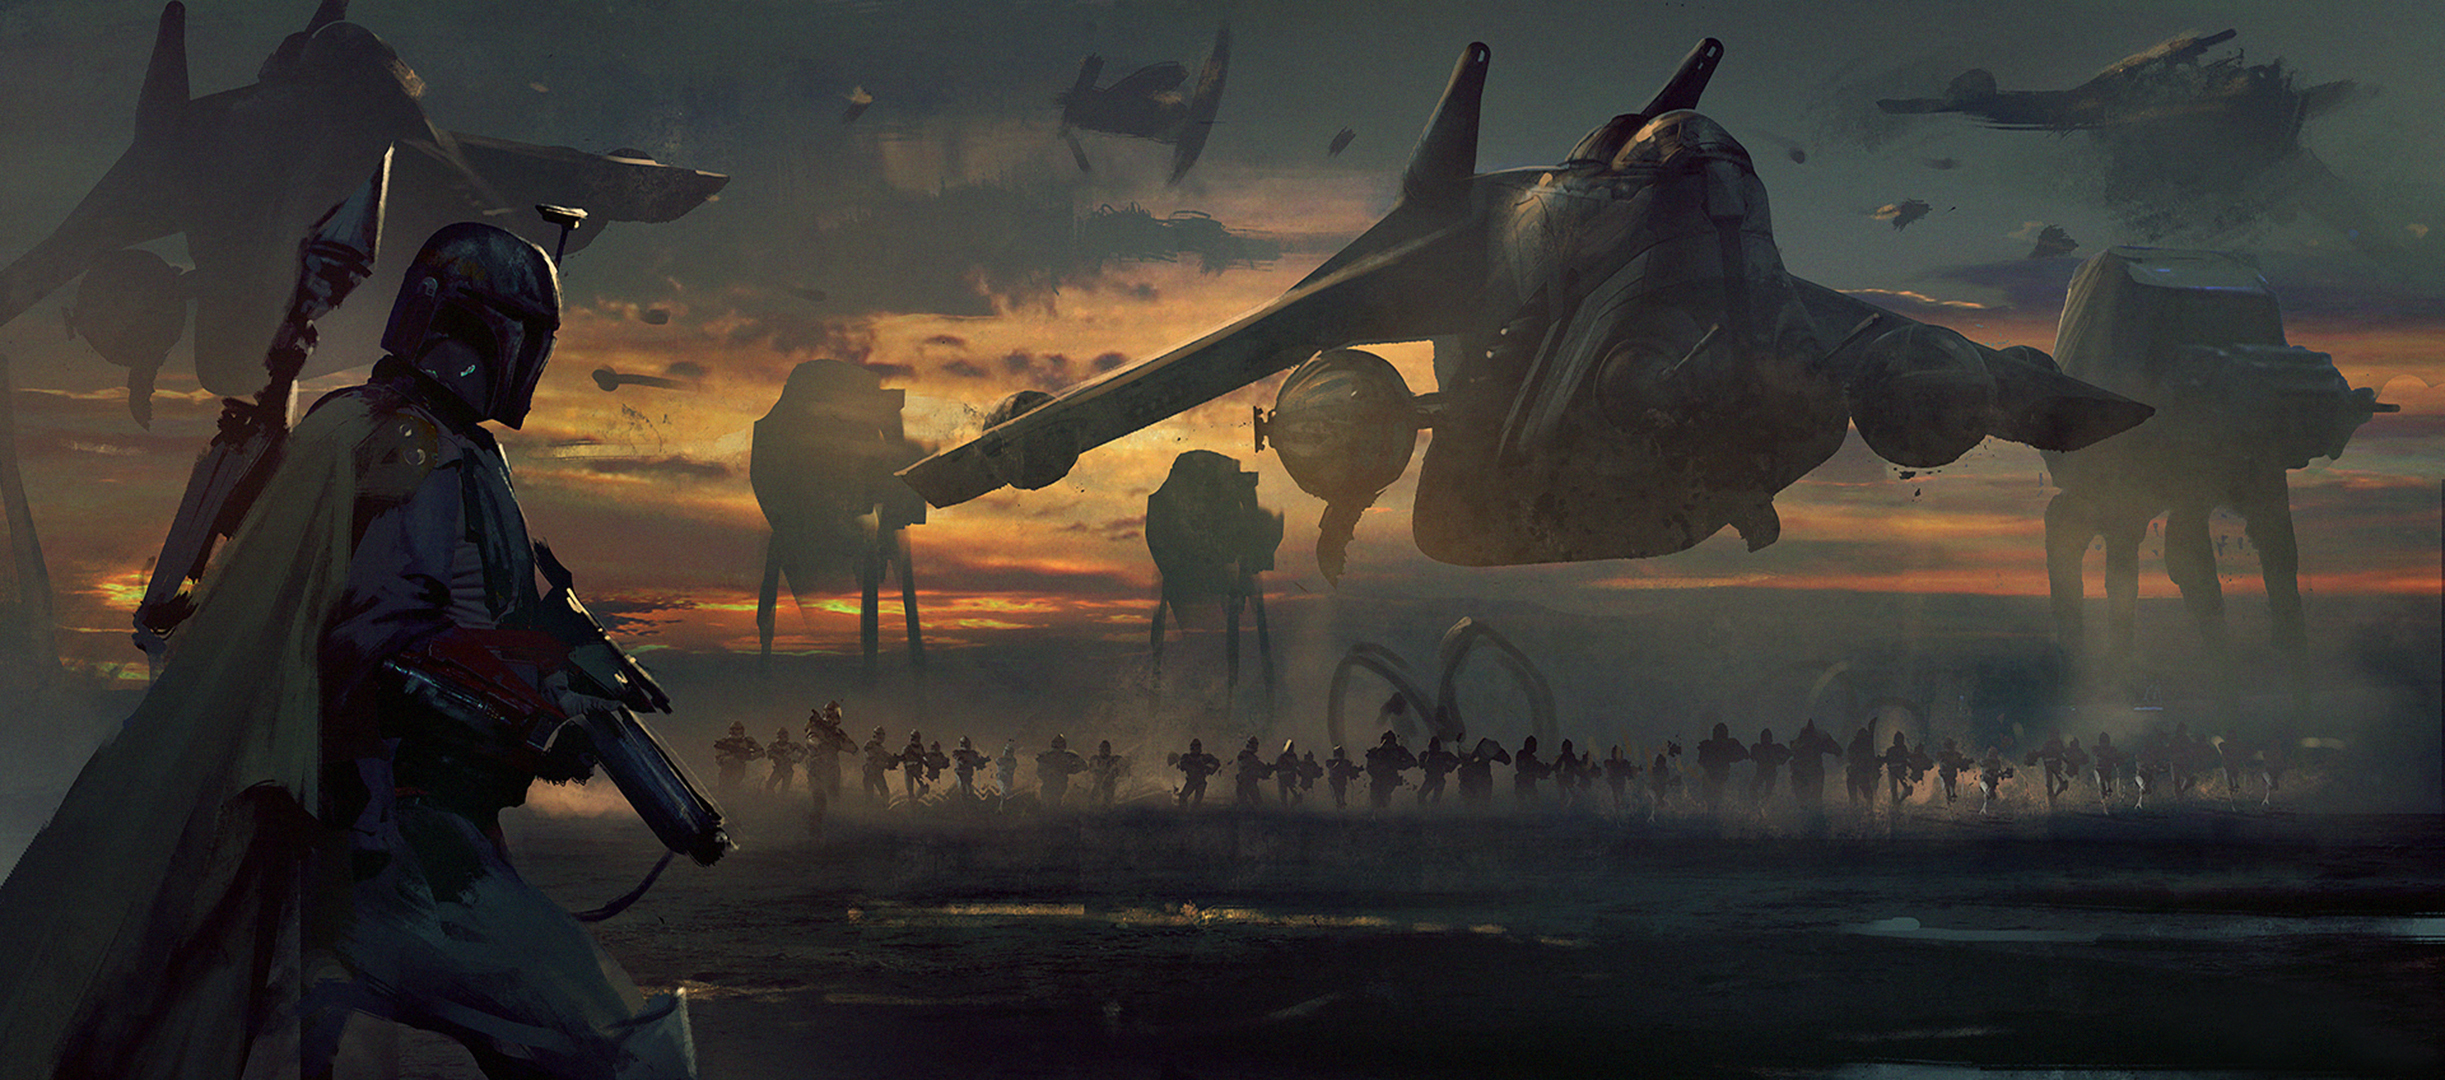 Boba fett Wallpaper star wars art imperial march   HD Wallpapers 2445x1080